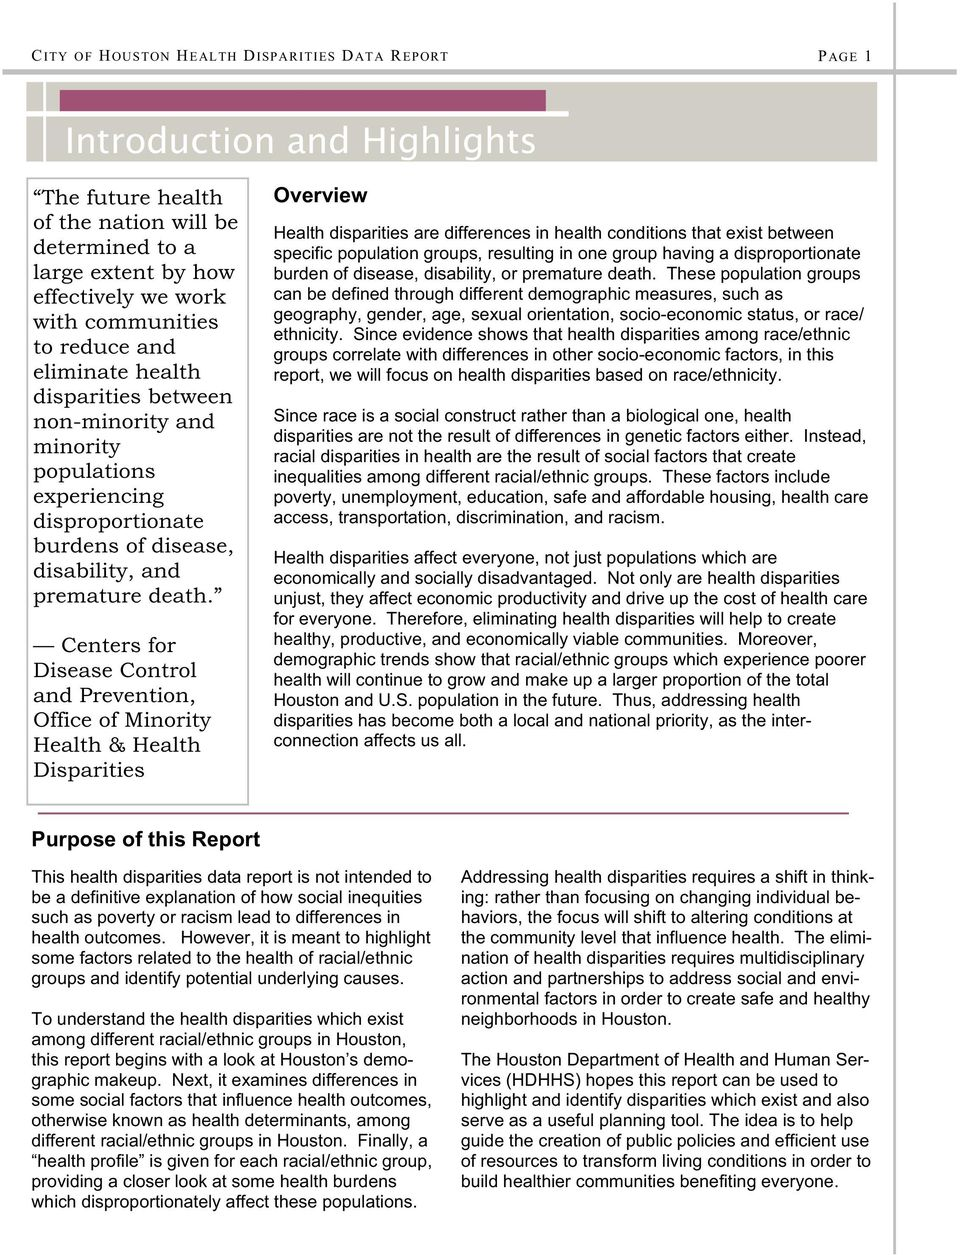 Centers for Disease Control and Prevention, Office of Minority Health & Health Disparities Overview Health disparities are differences in health conditions that exist between specific population